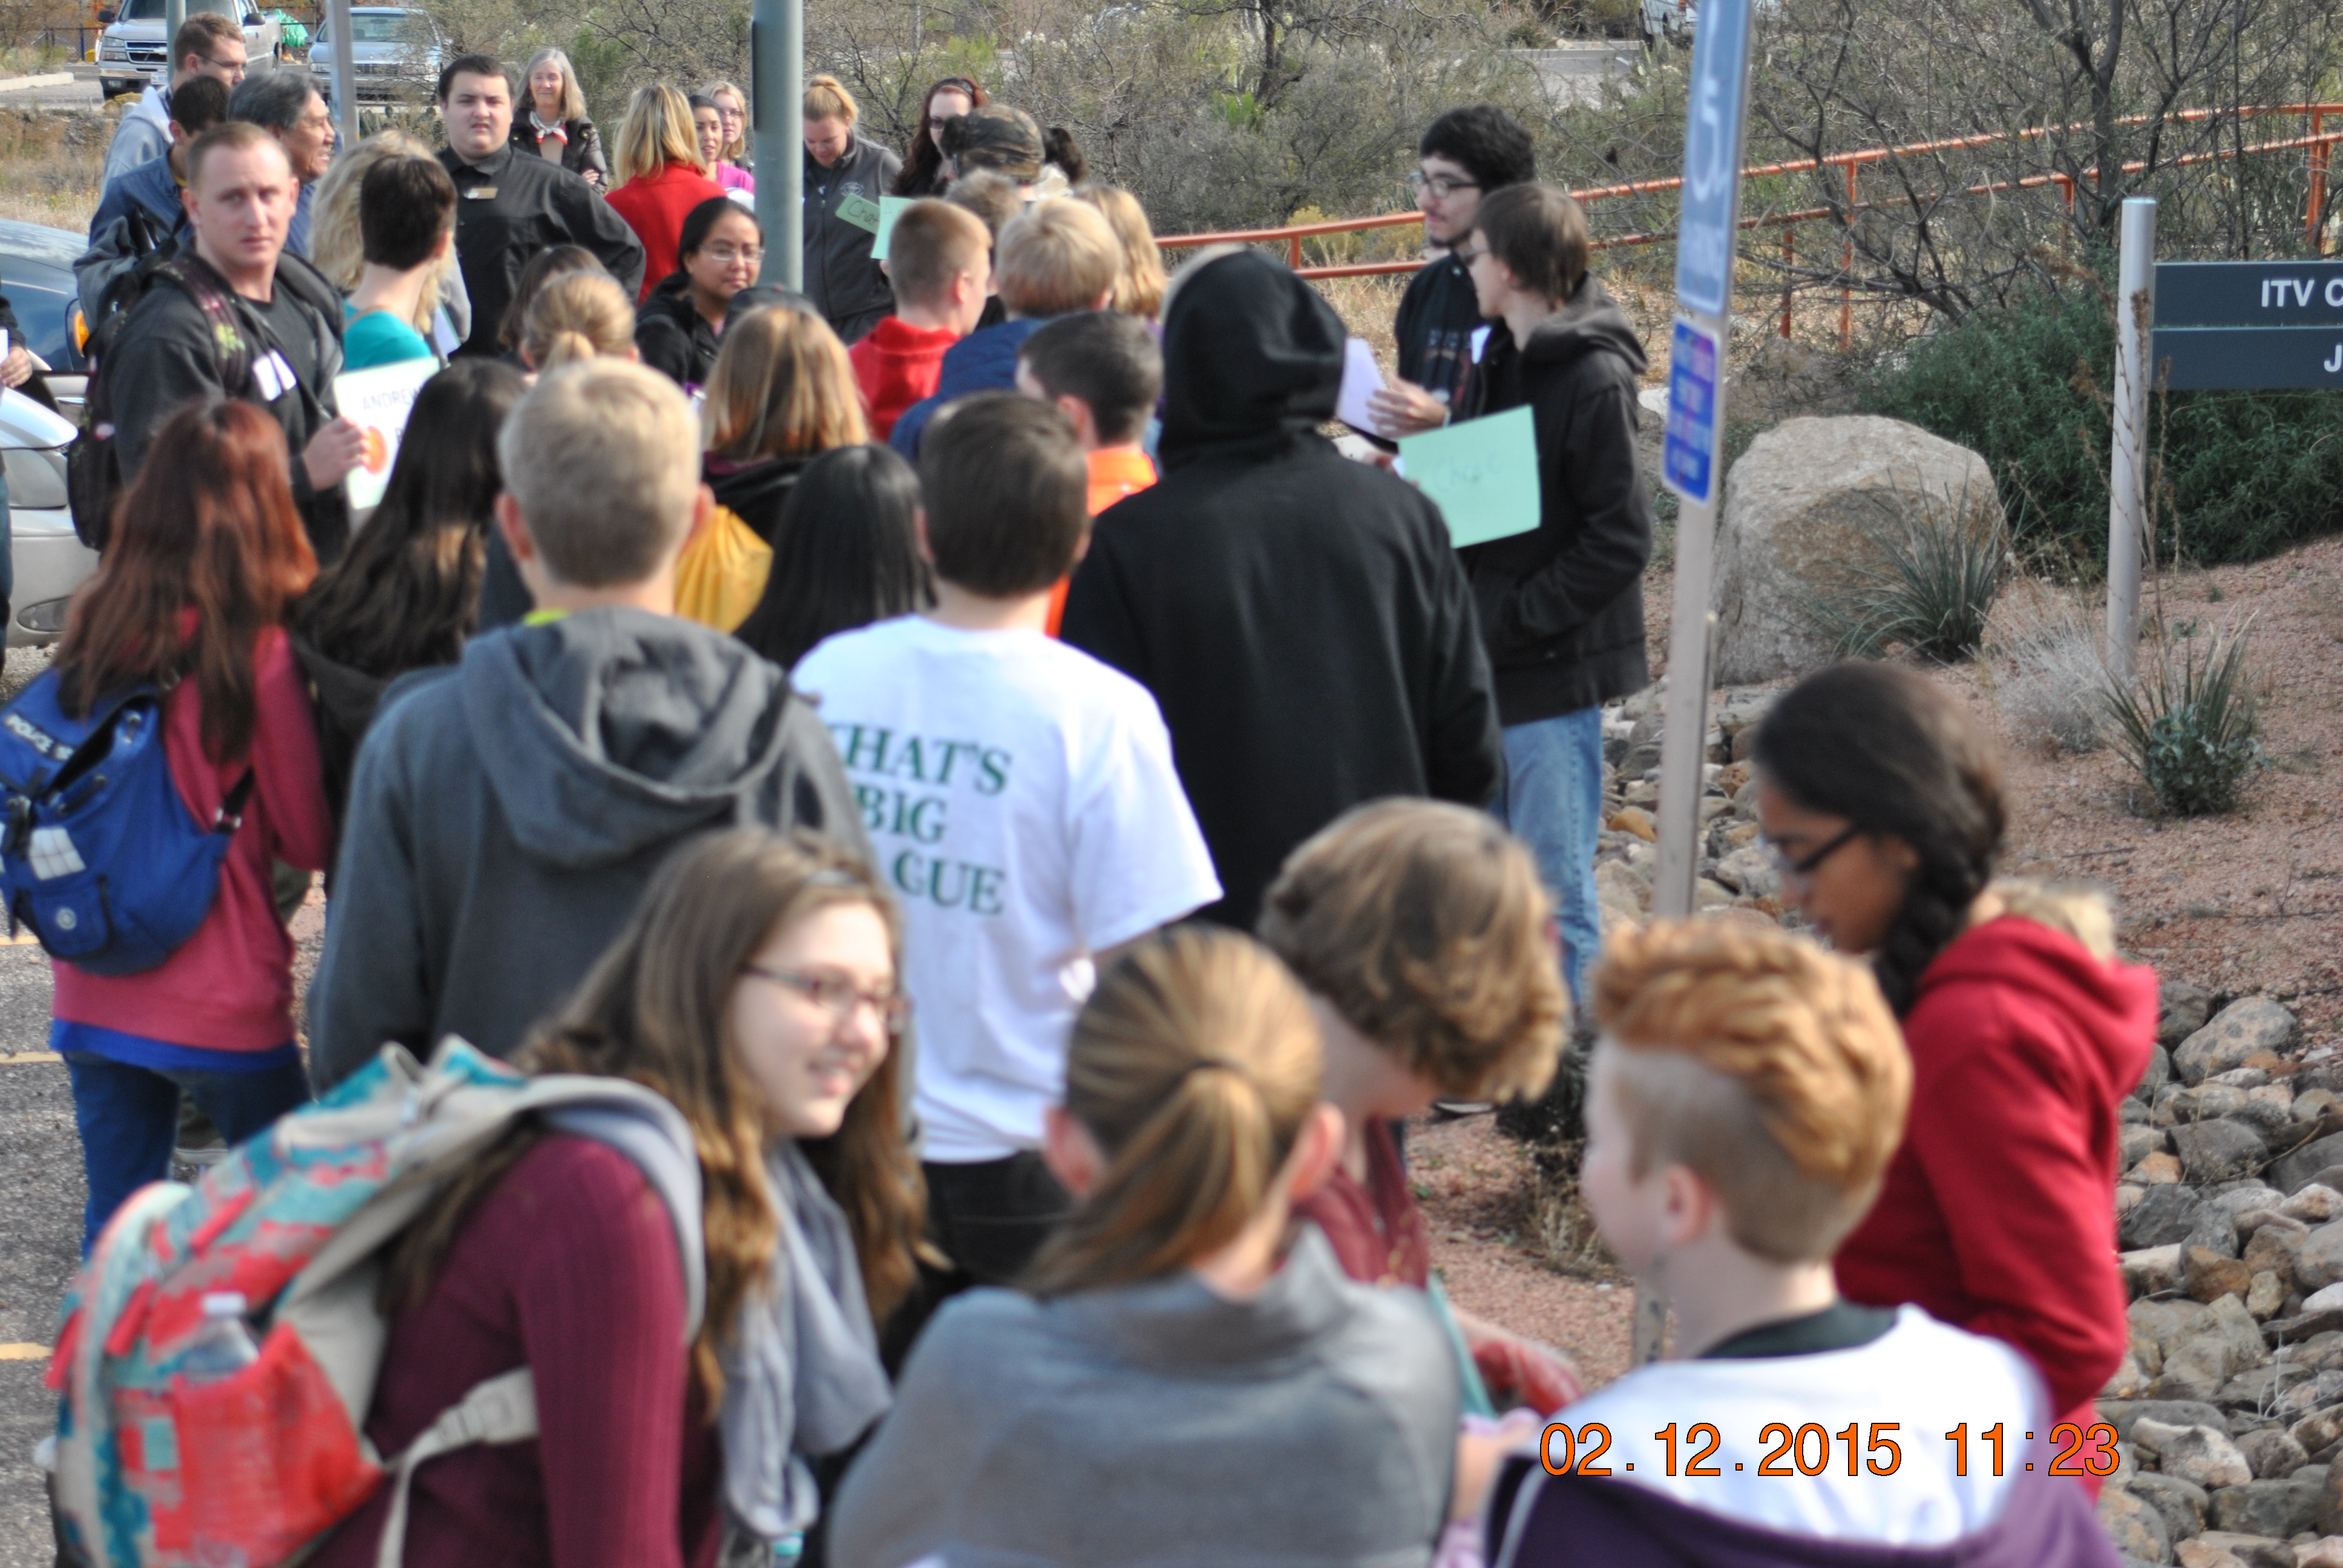 Eighth grade students arrive to greet college students.